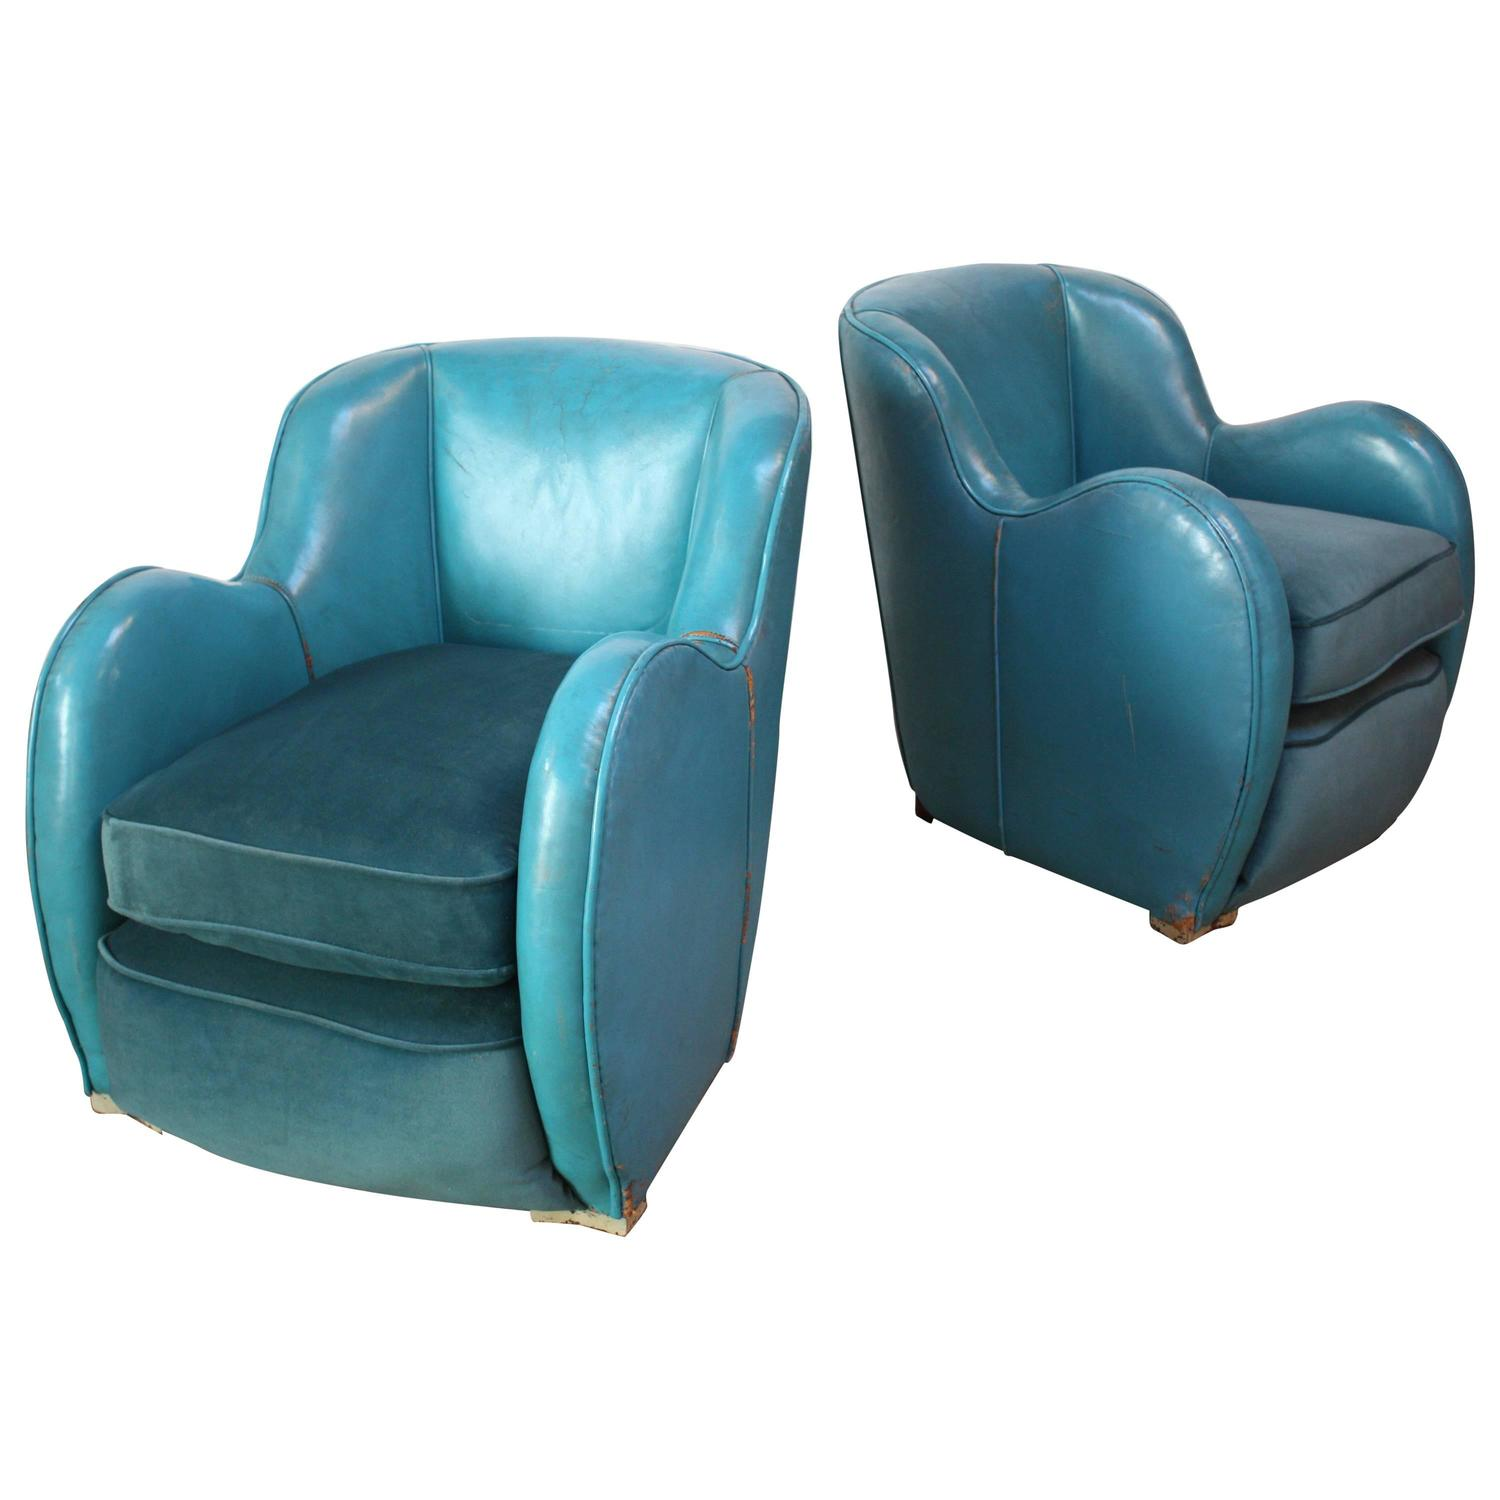 Blue Leather Club Chair Scandinavian Deco Club Chairs In Blue Leather And Velvet